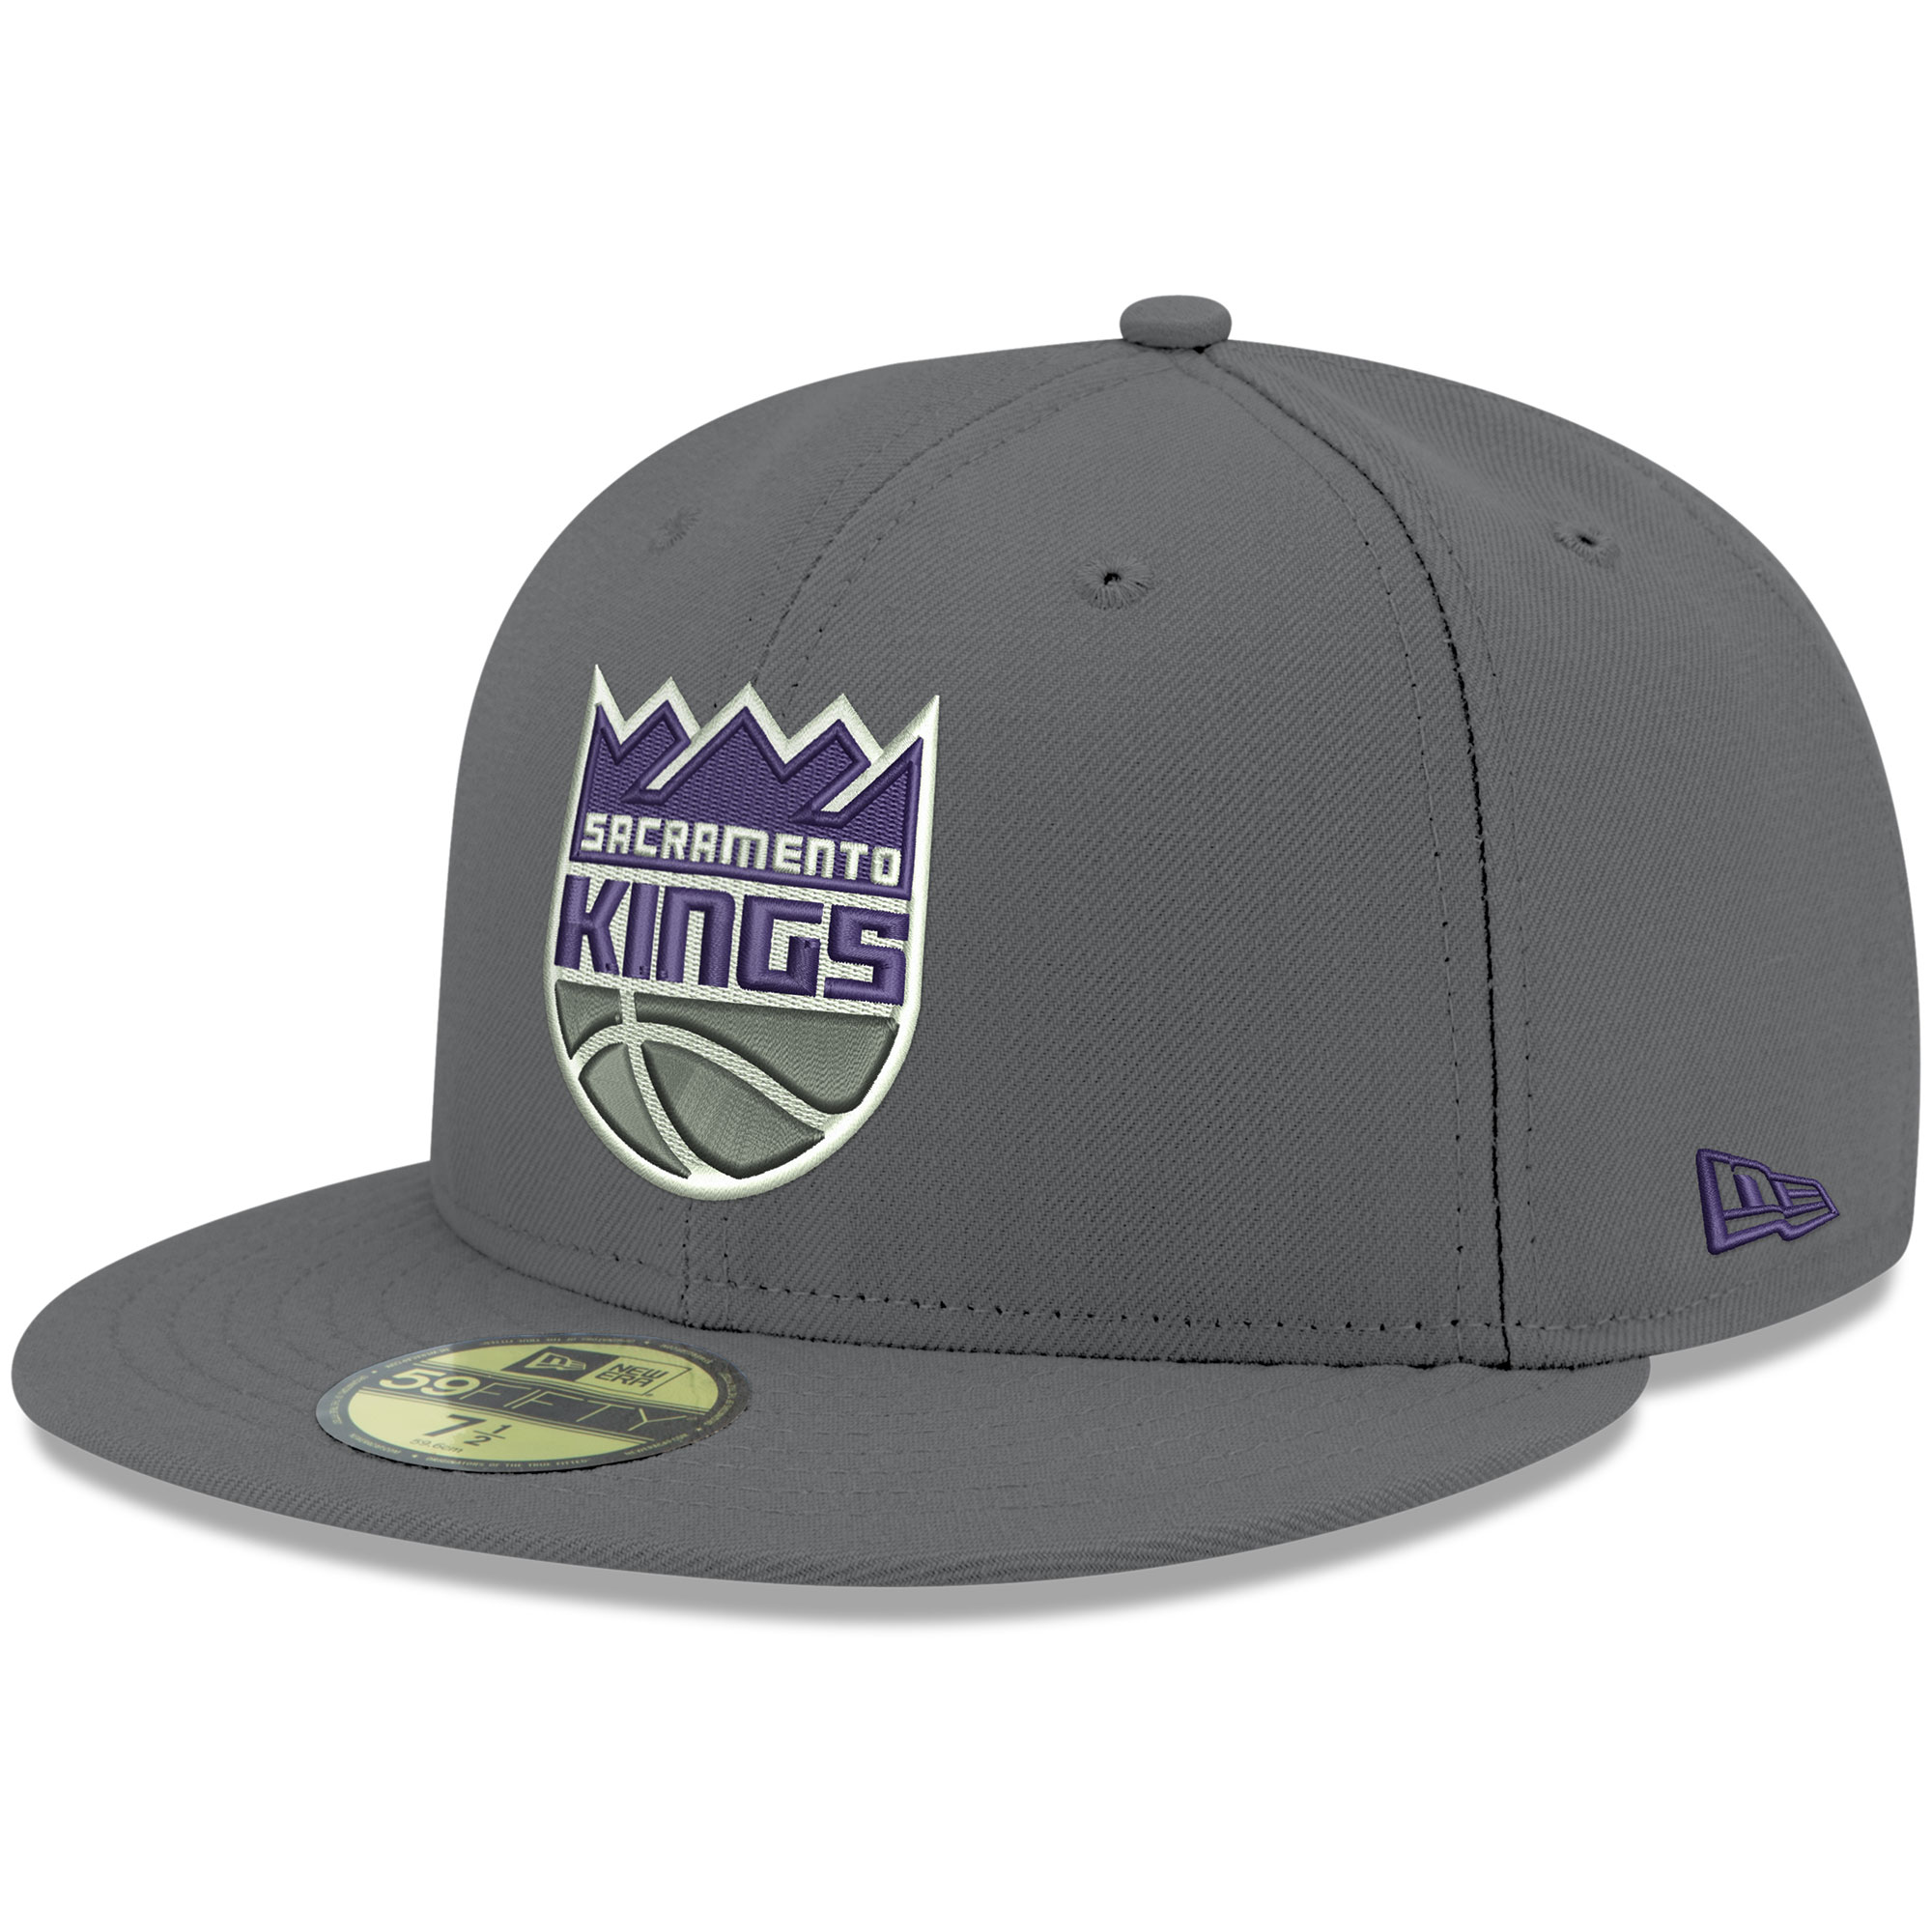 Sacramento Kings New Era Official Team Color 59FIFTY Fitted Hat - Gray